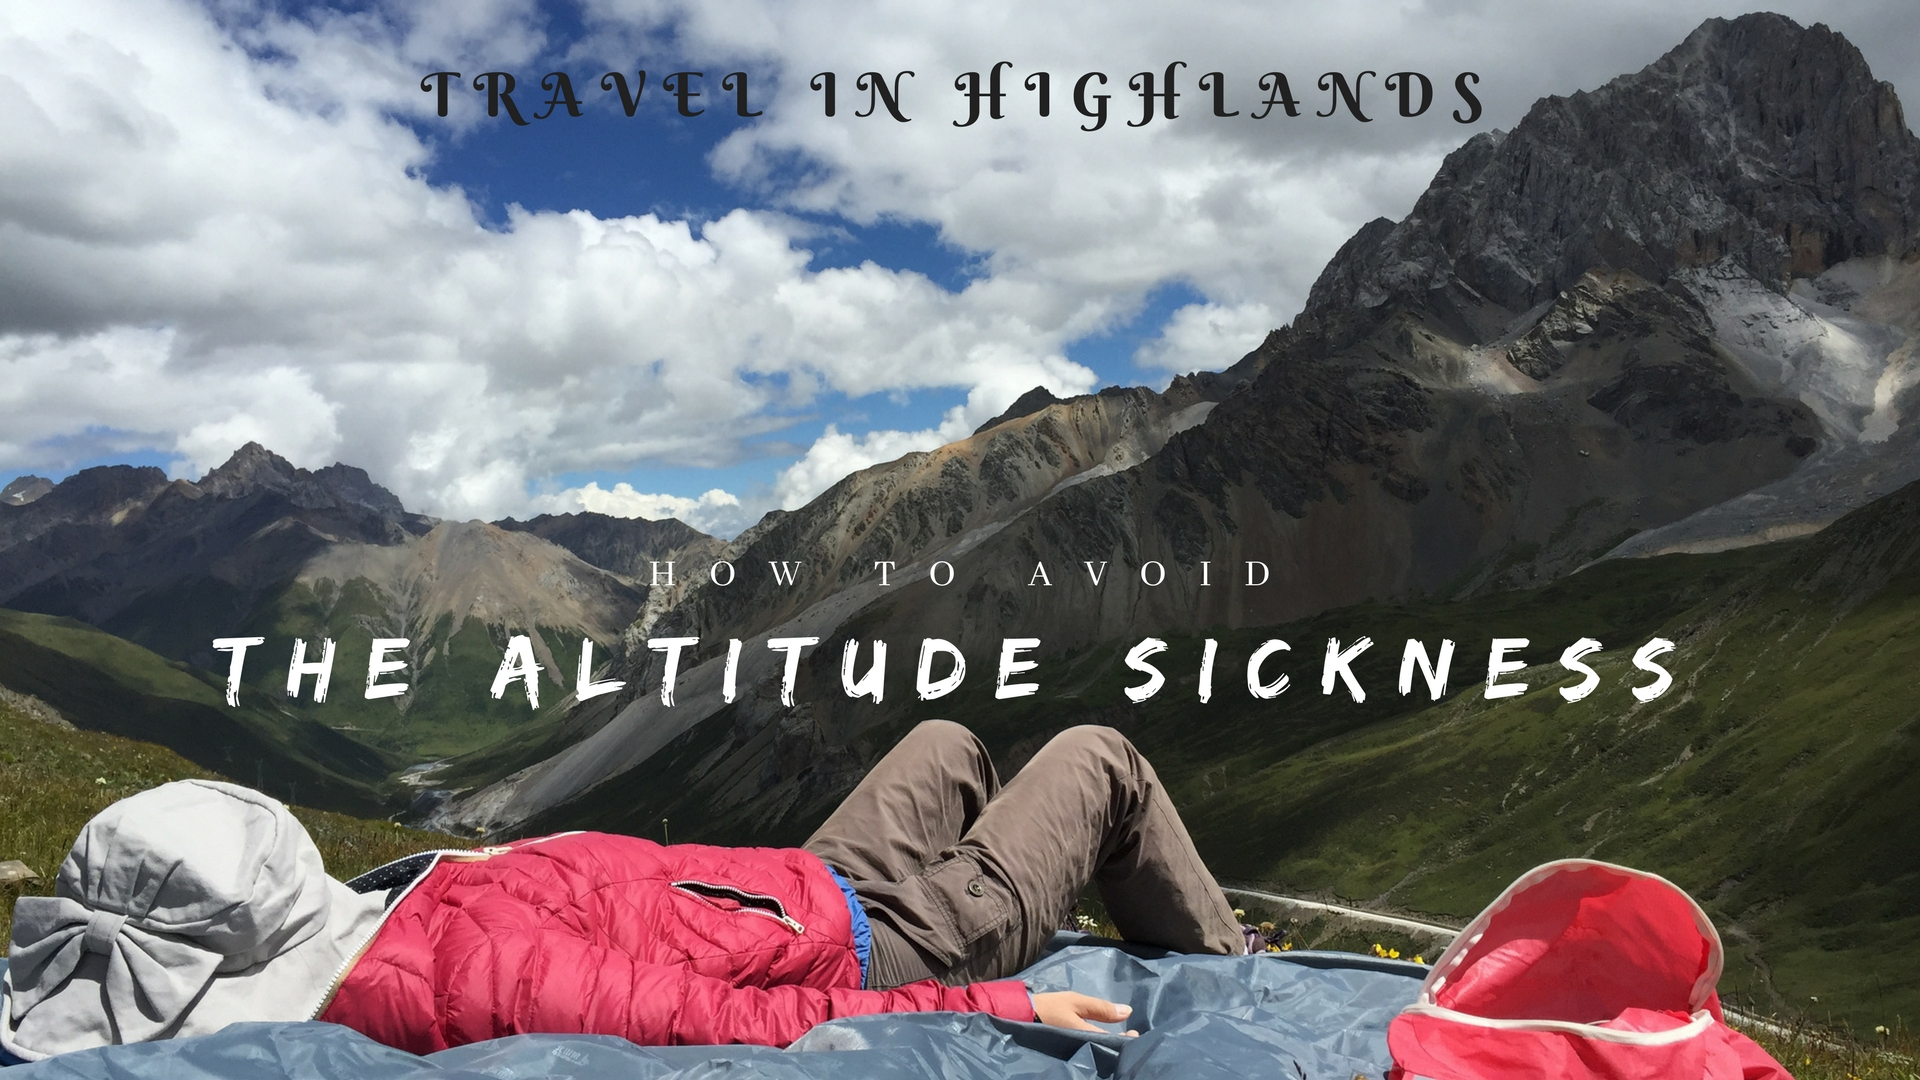 TRAVEL IN HIGHLANDS- HOW TO AVOID ALTITUDE SICKNESS